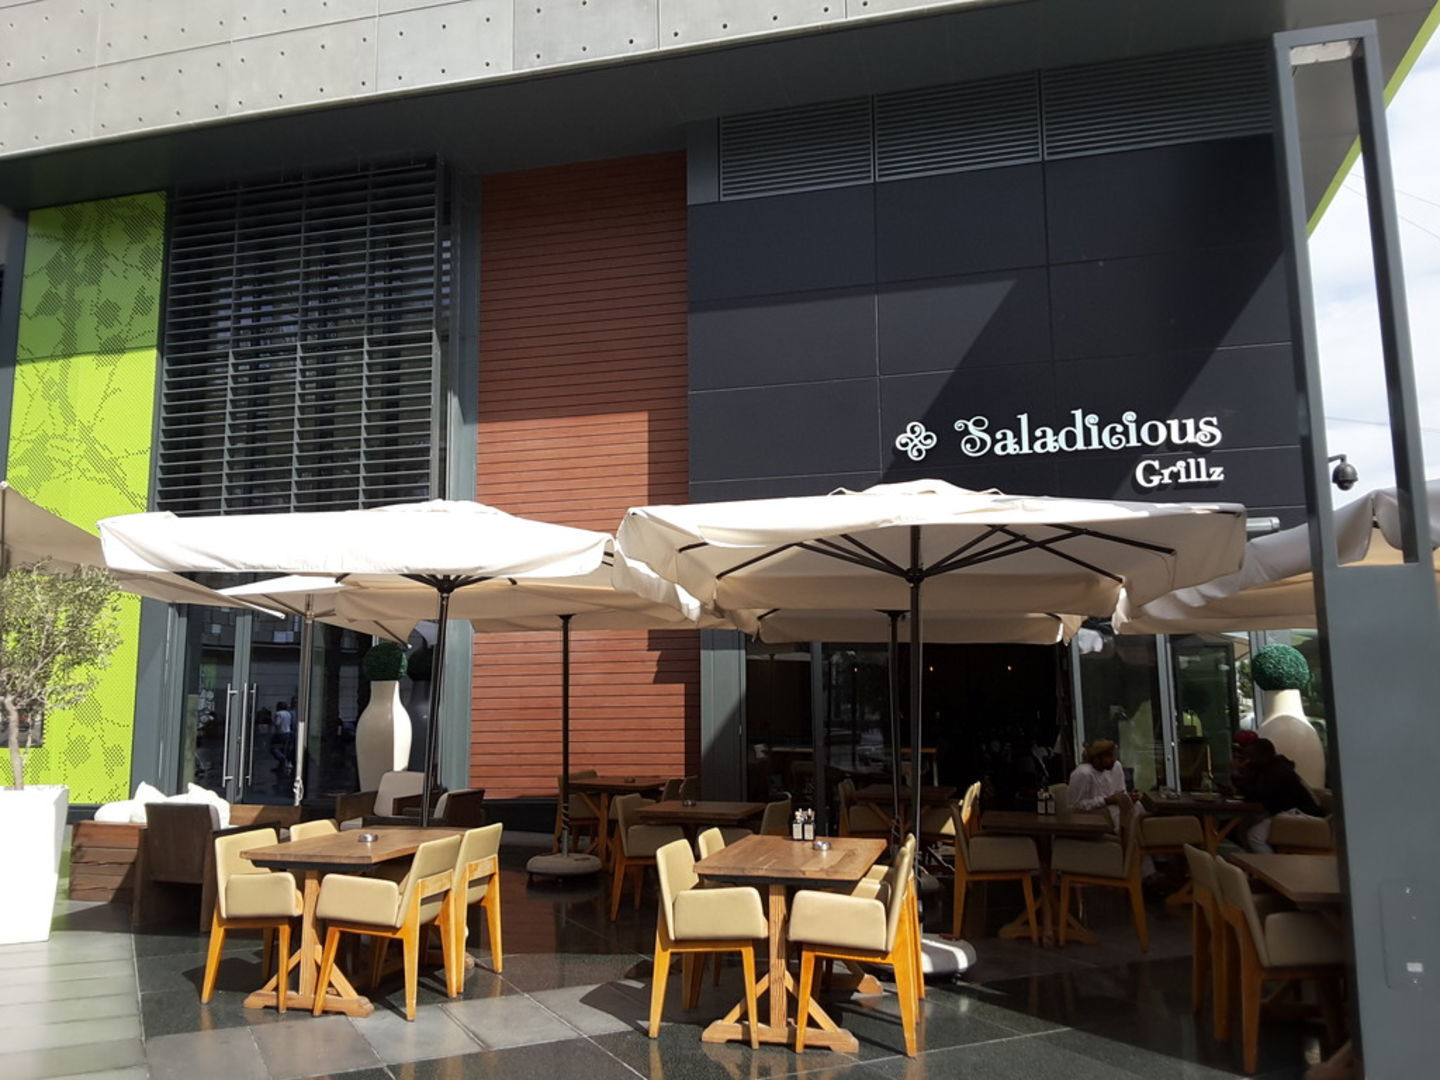 HiDubai-business-saladicious-grillz-food-beverage-restaurants-bars-al-wasl-dubai-2